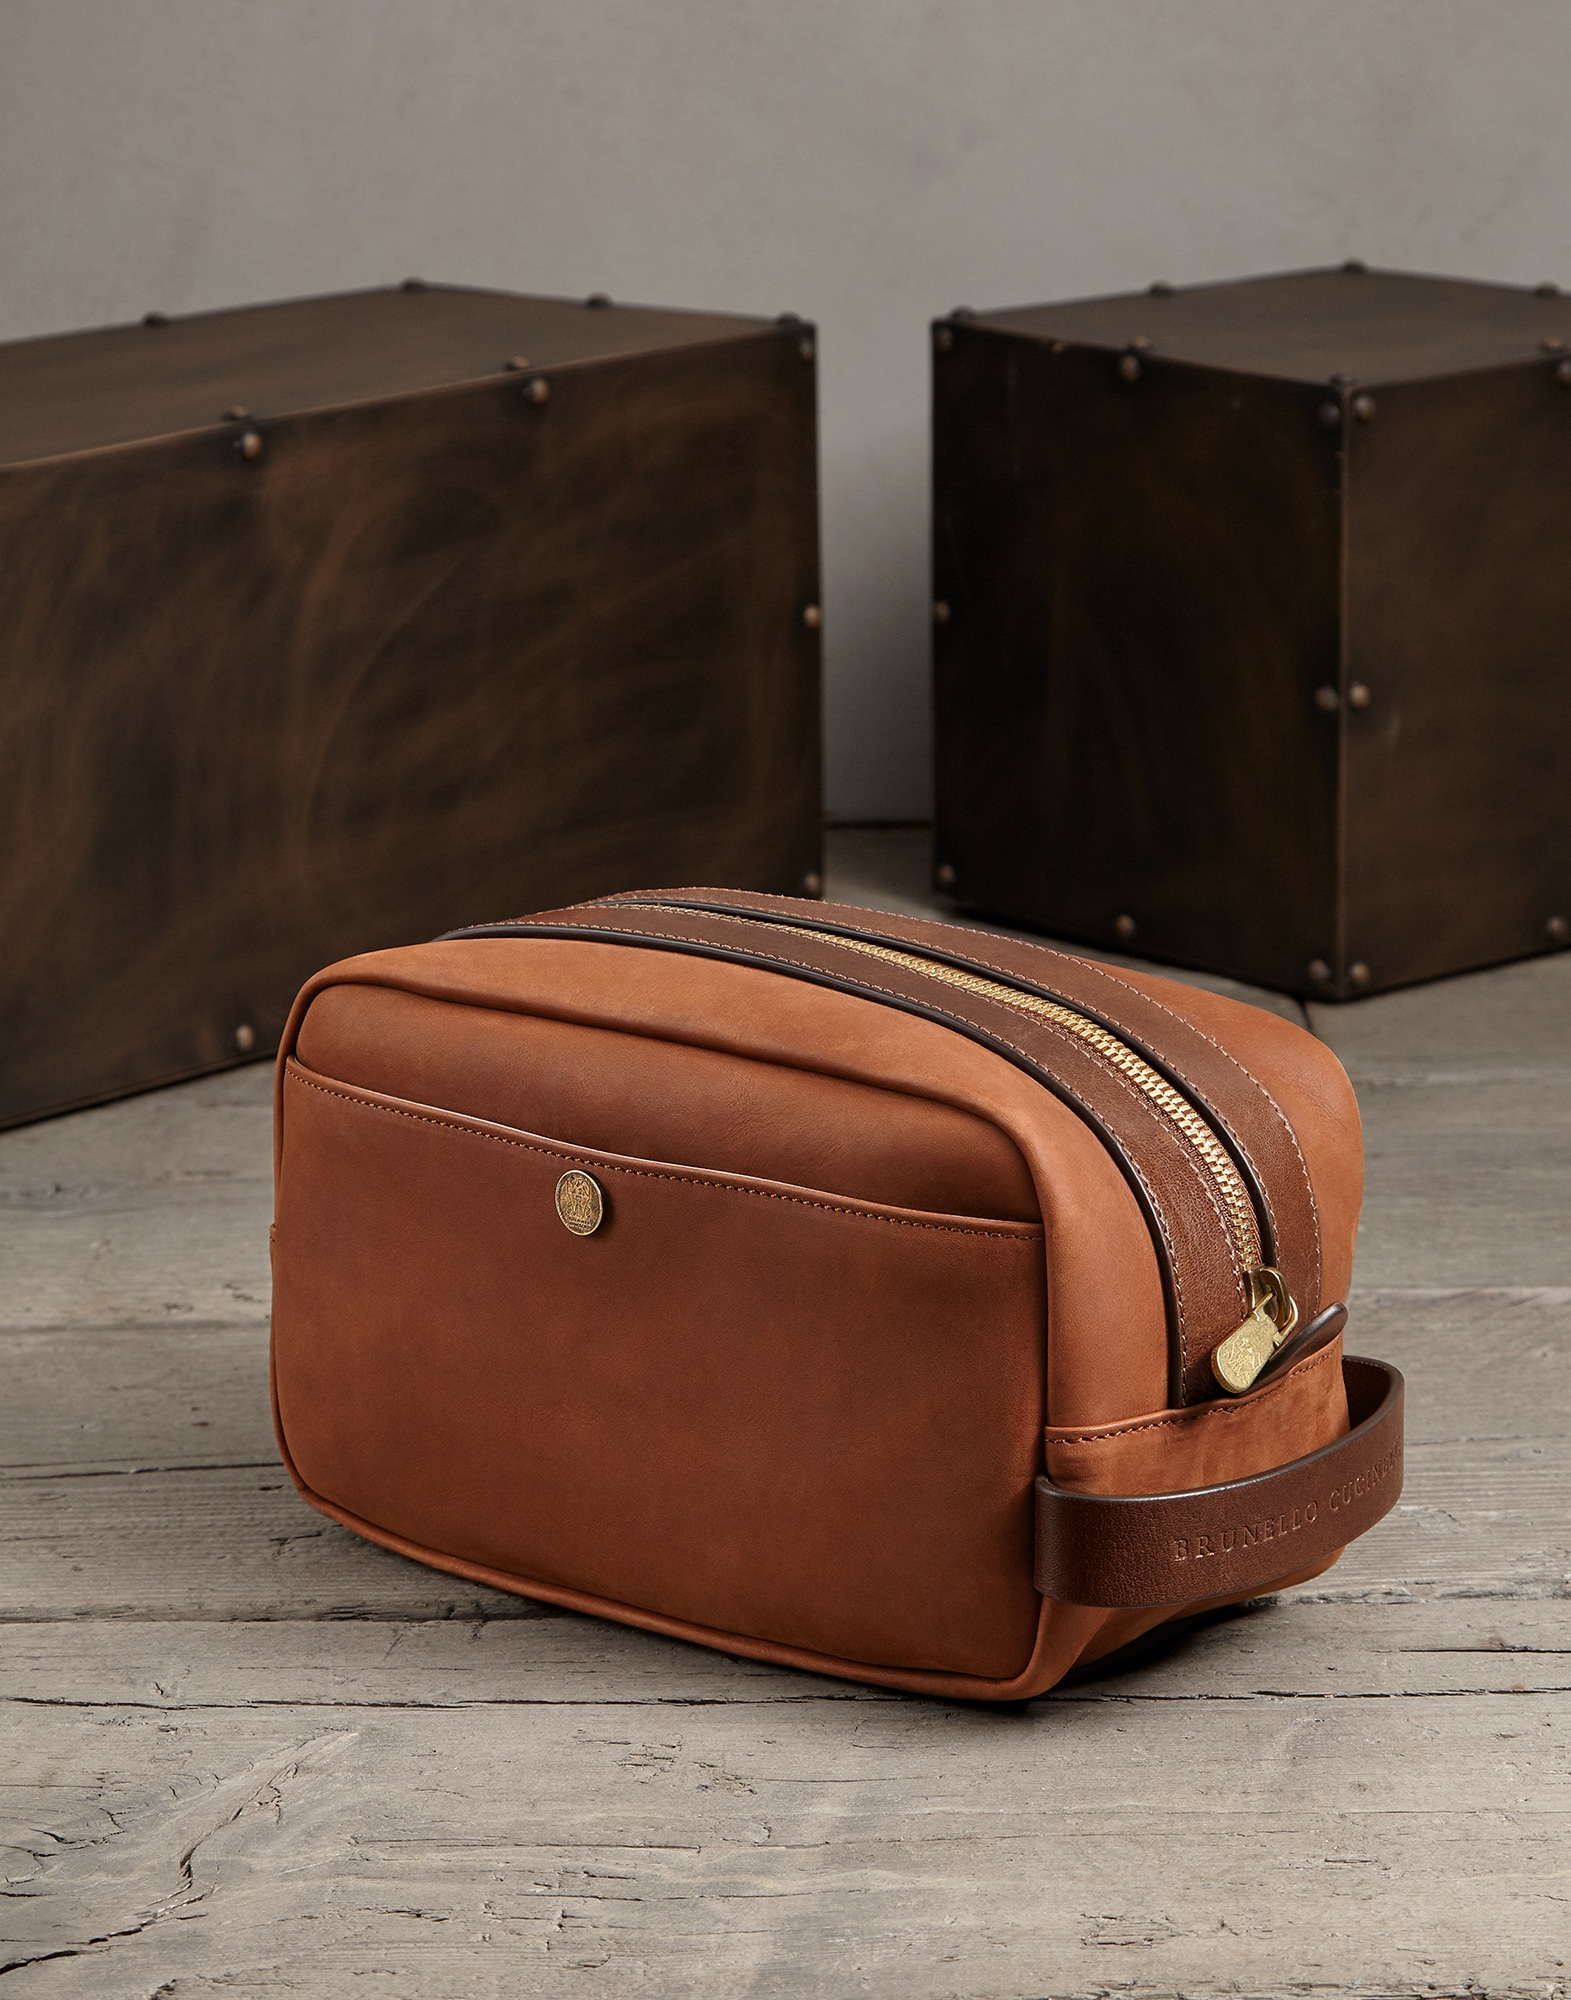 Beauty Case Bark Man 1 - Brunello Cucinelli